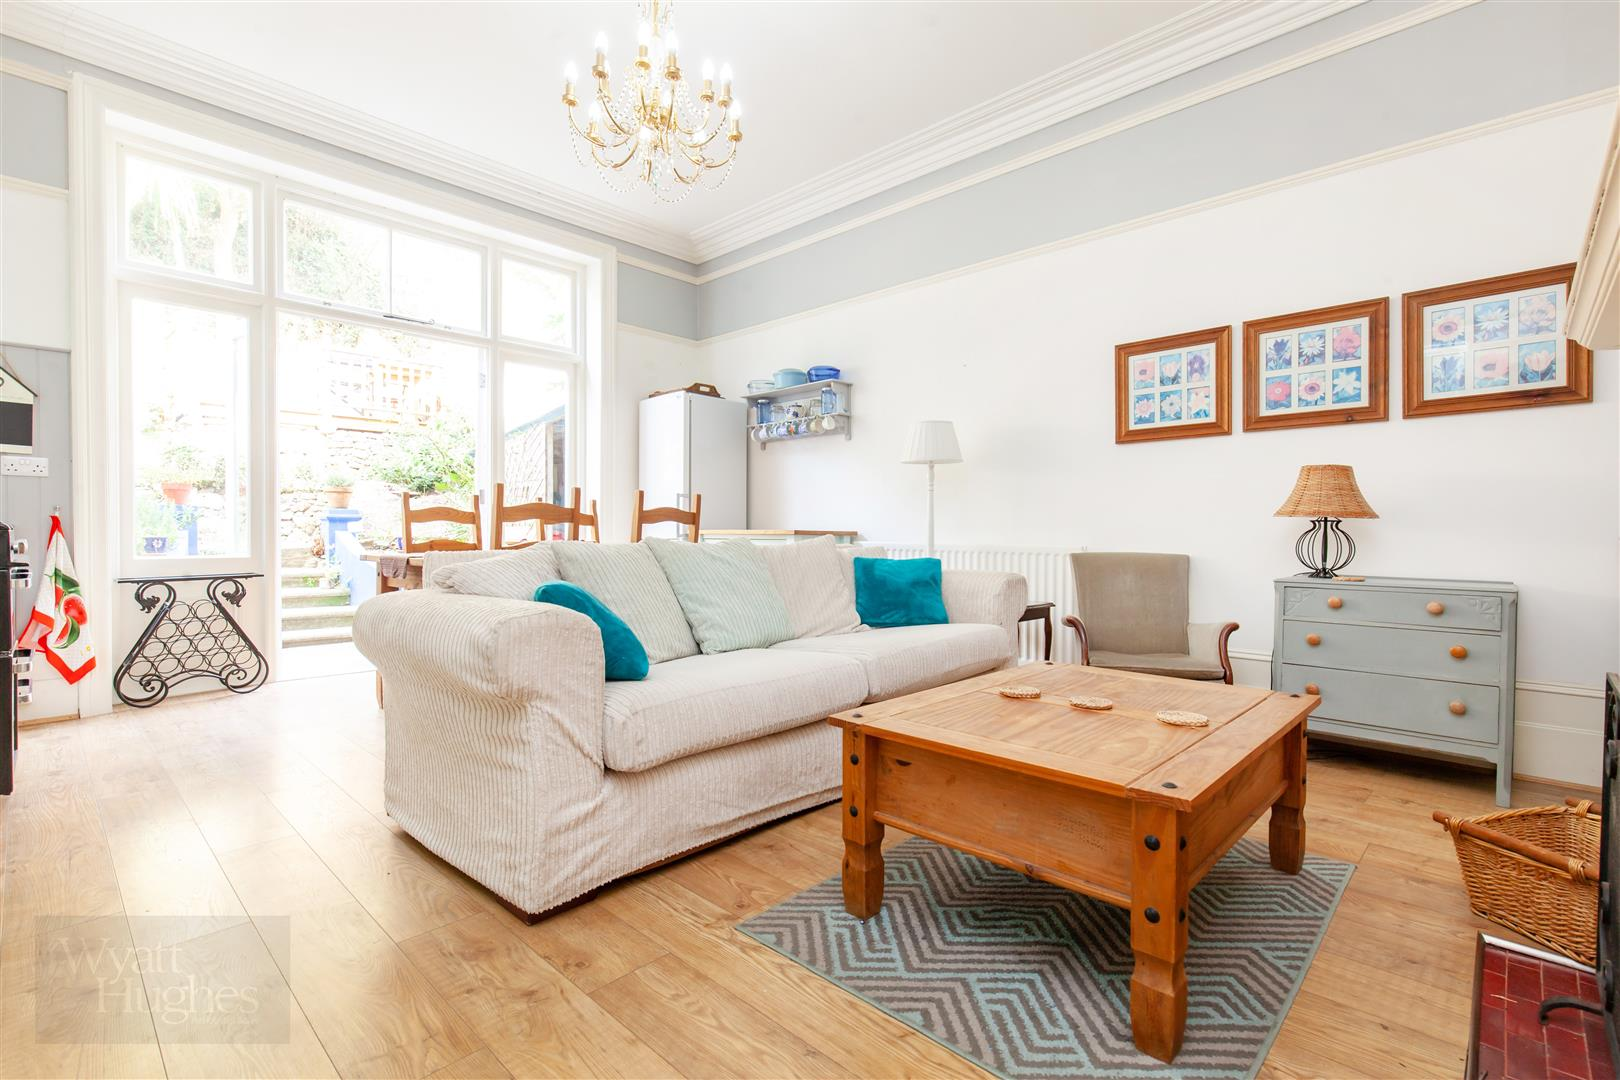 3 bed flat for sale in Grosvenor Crescent, St. Leonards-On-Sea, TN38